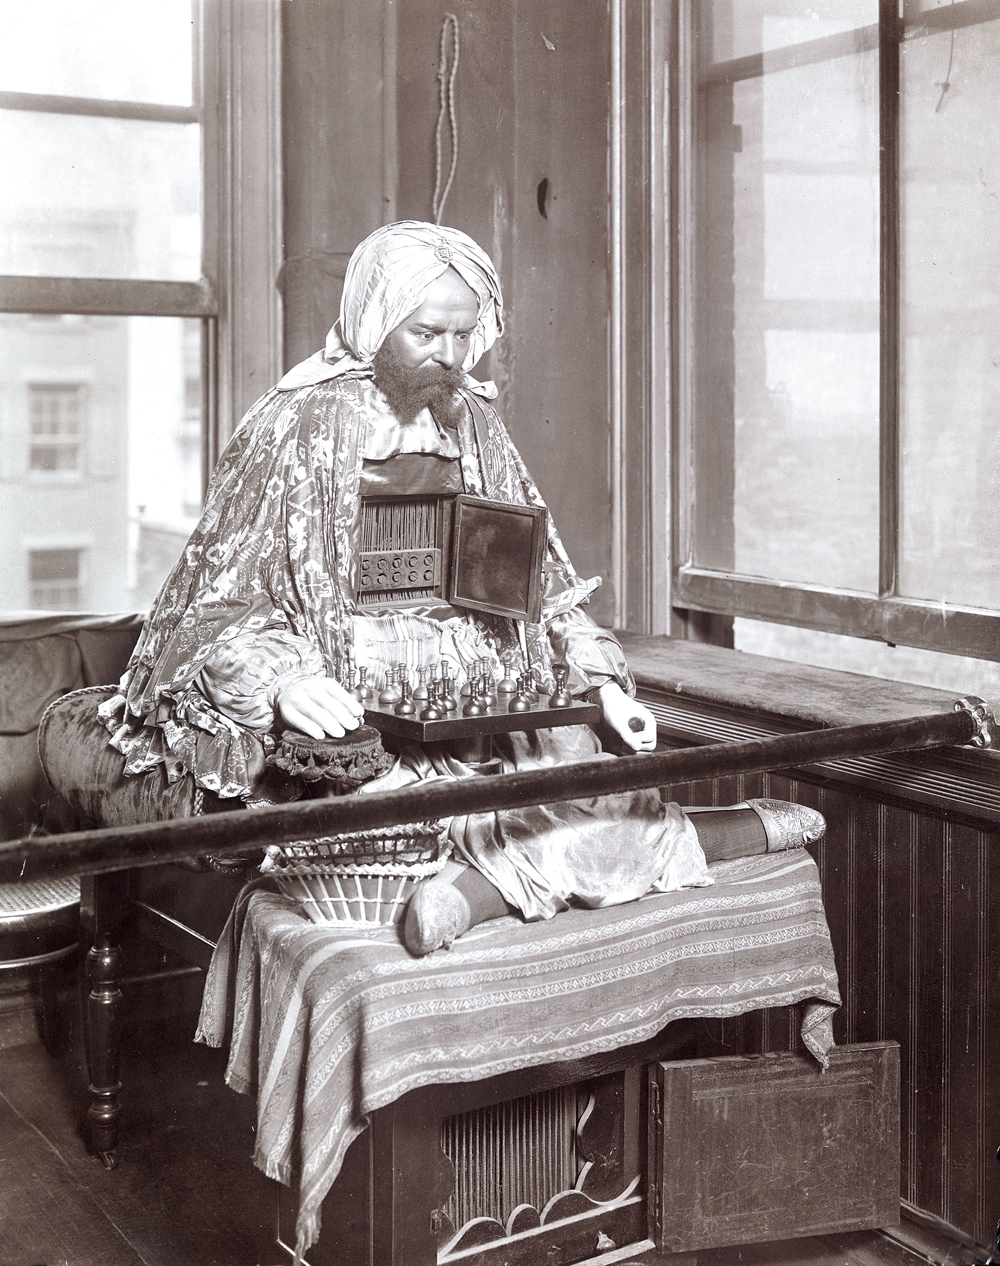 Ajeeb, chess-playing automaton, a long-term attraction at the Eden Musee, a New York City wax museum, c. 1906. Museum of the City of New York/Art Resource.